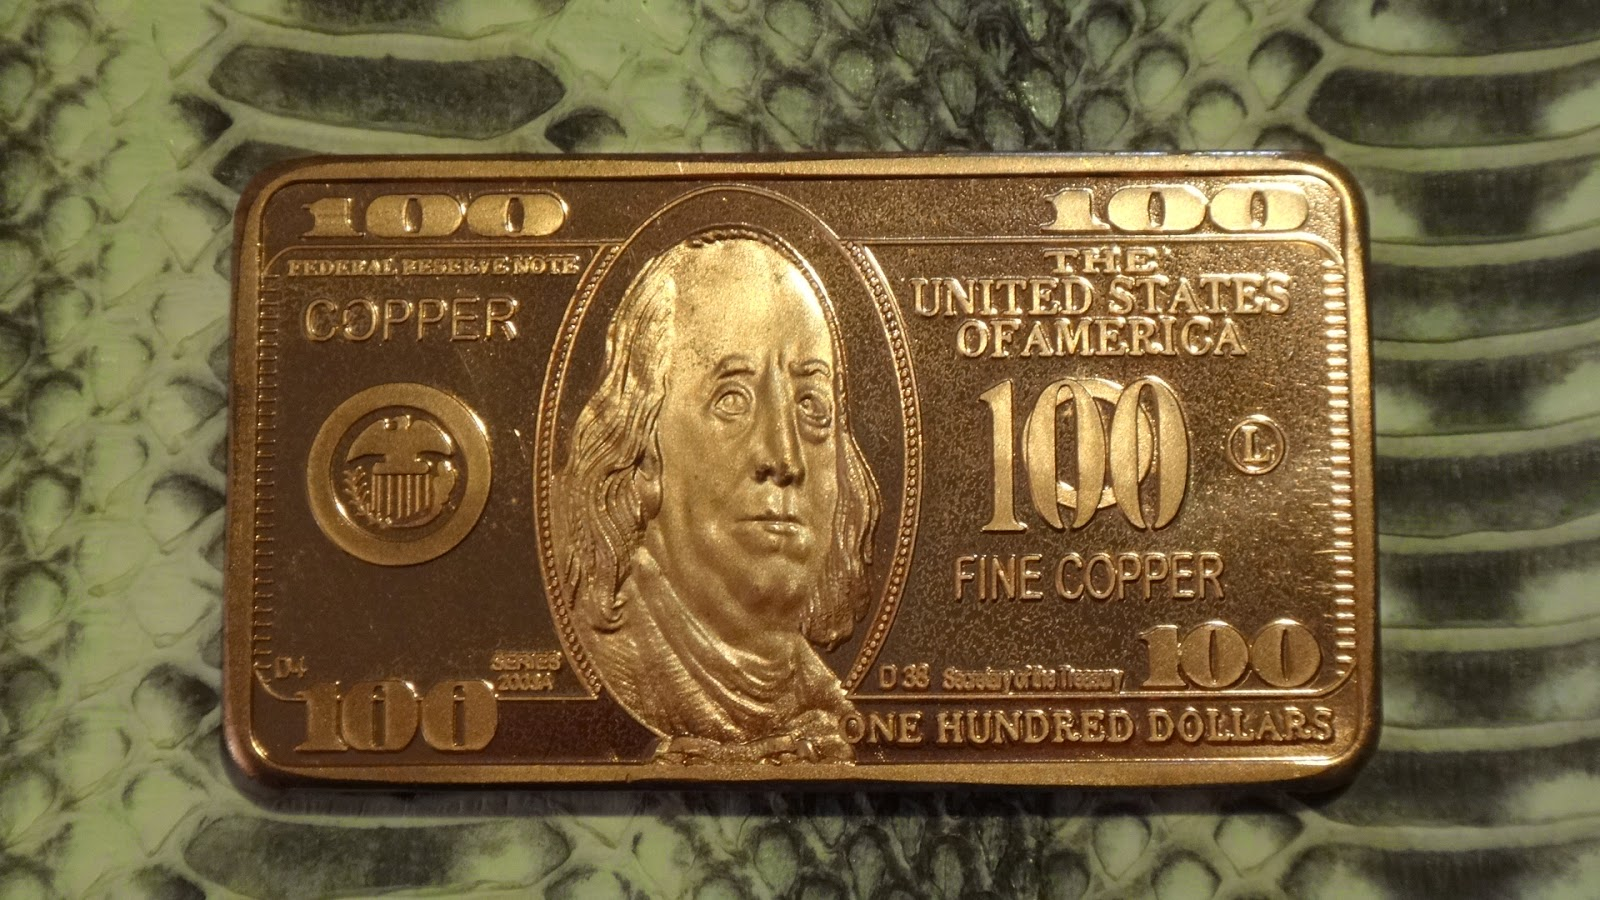 Base Metals Bullion Various Copper Bullion Art Bars 1oz